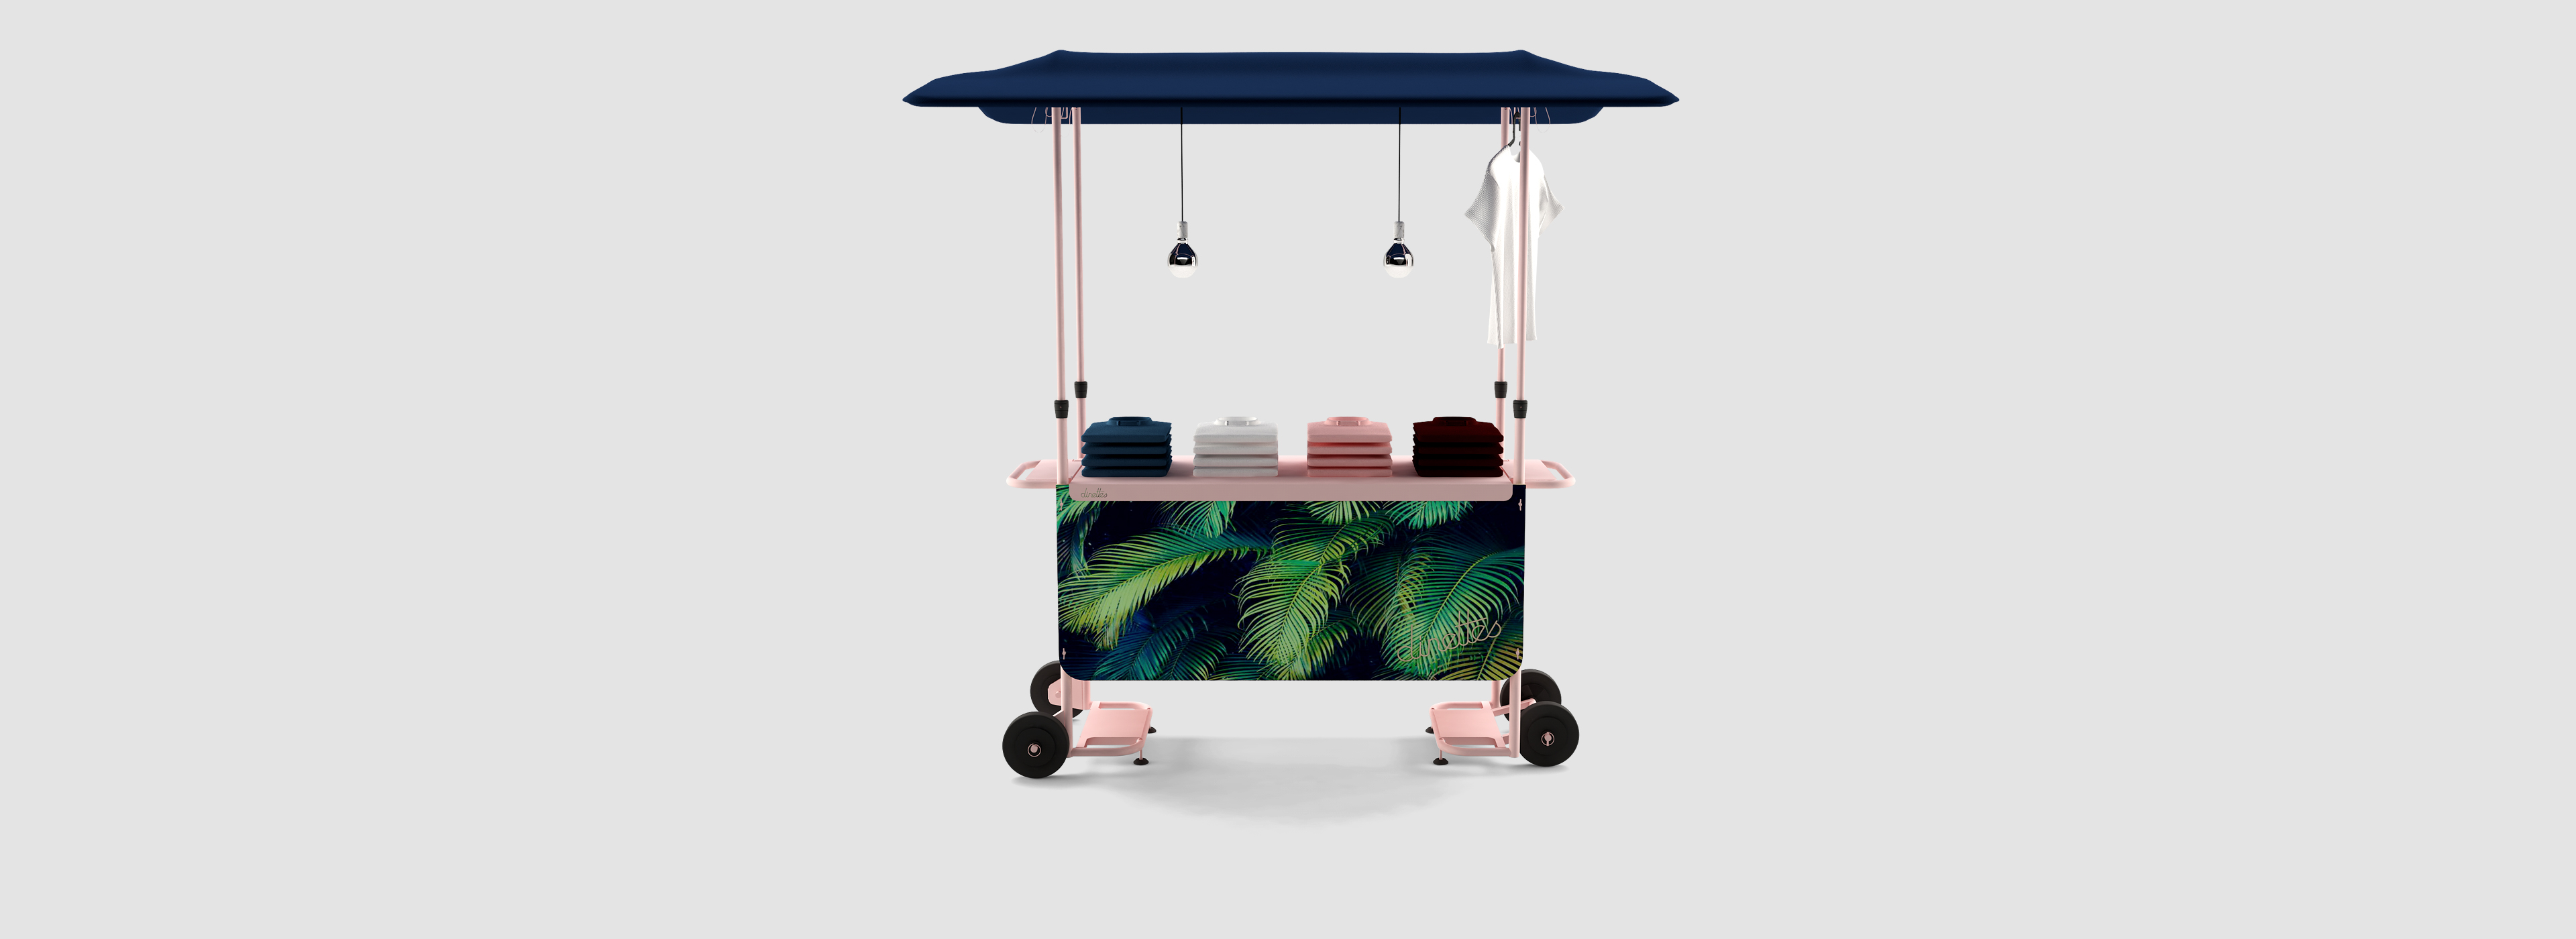 MINI STAND POP UP STORE